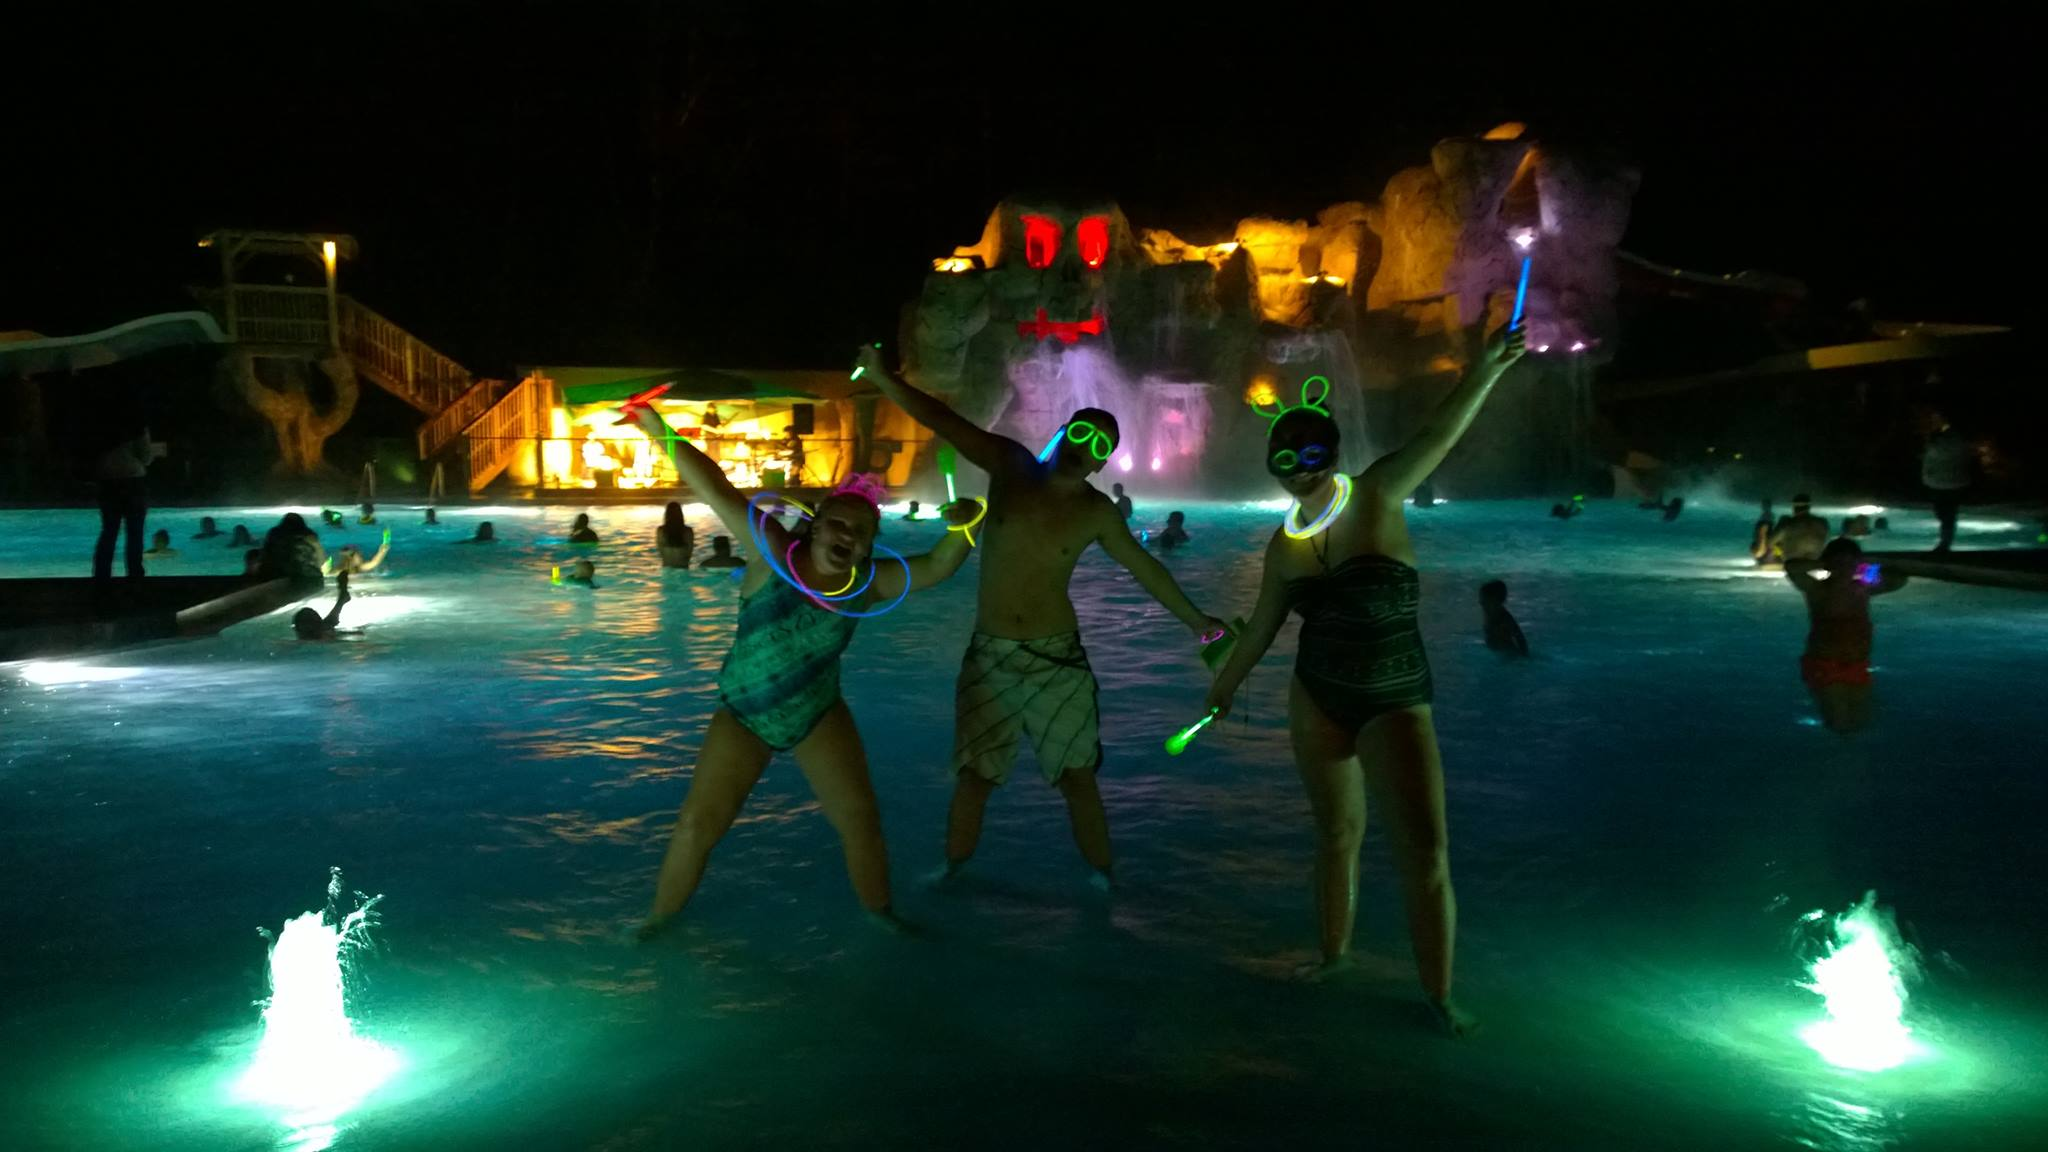 Kids in pool with glow sticks at night